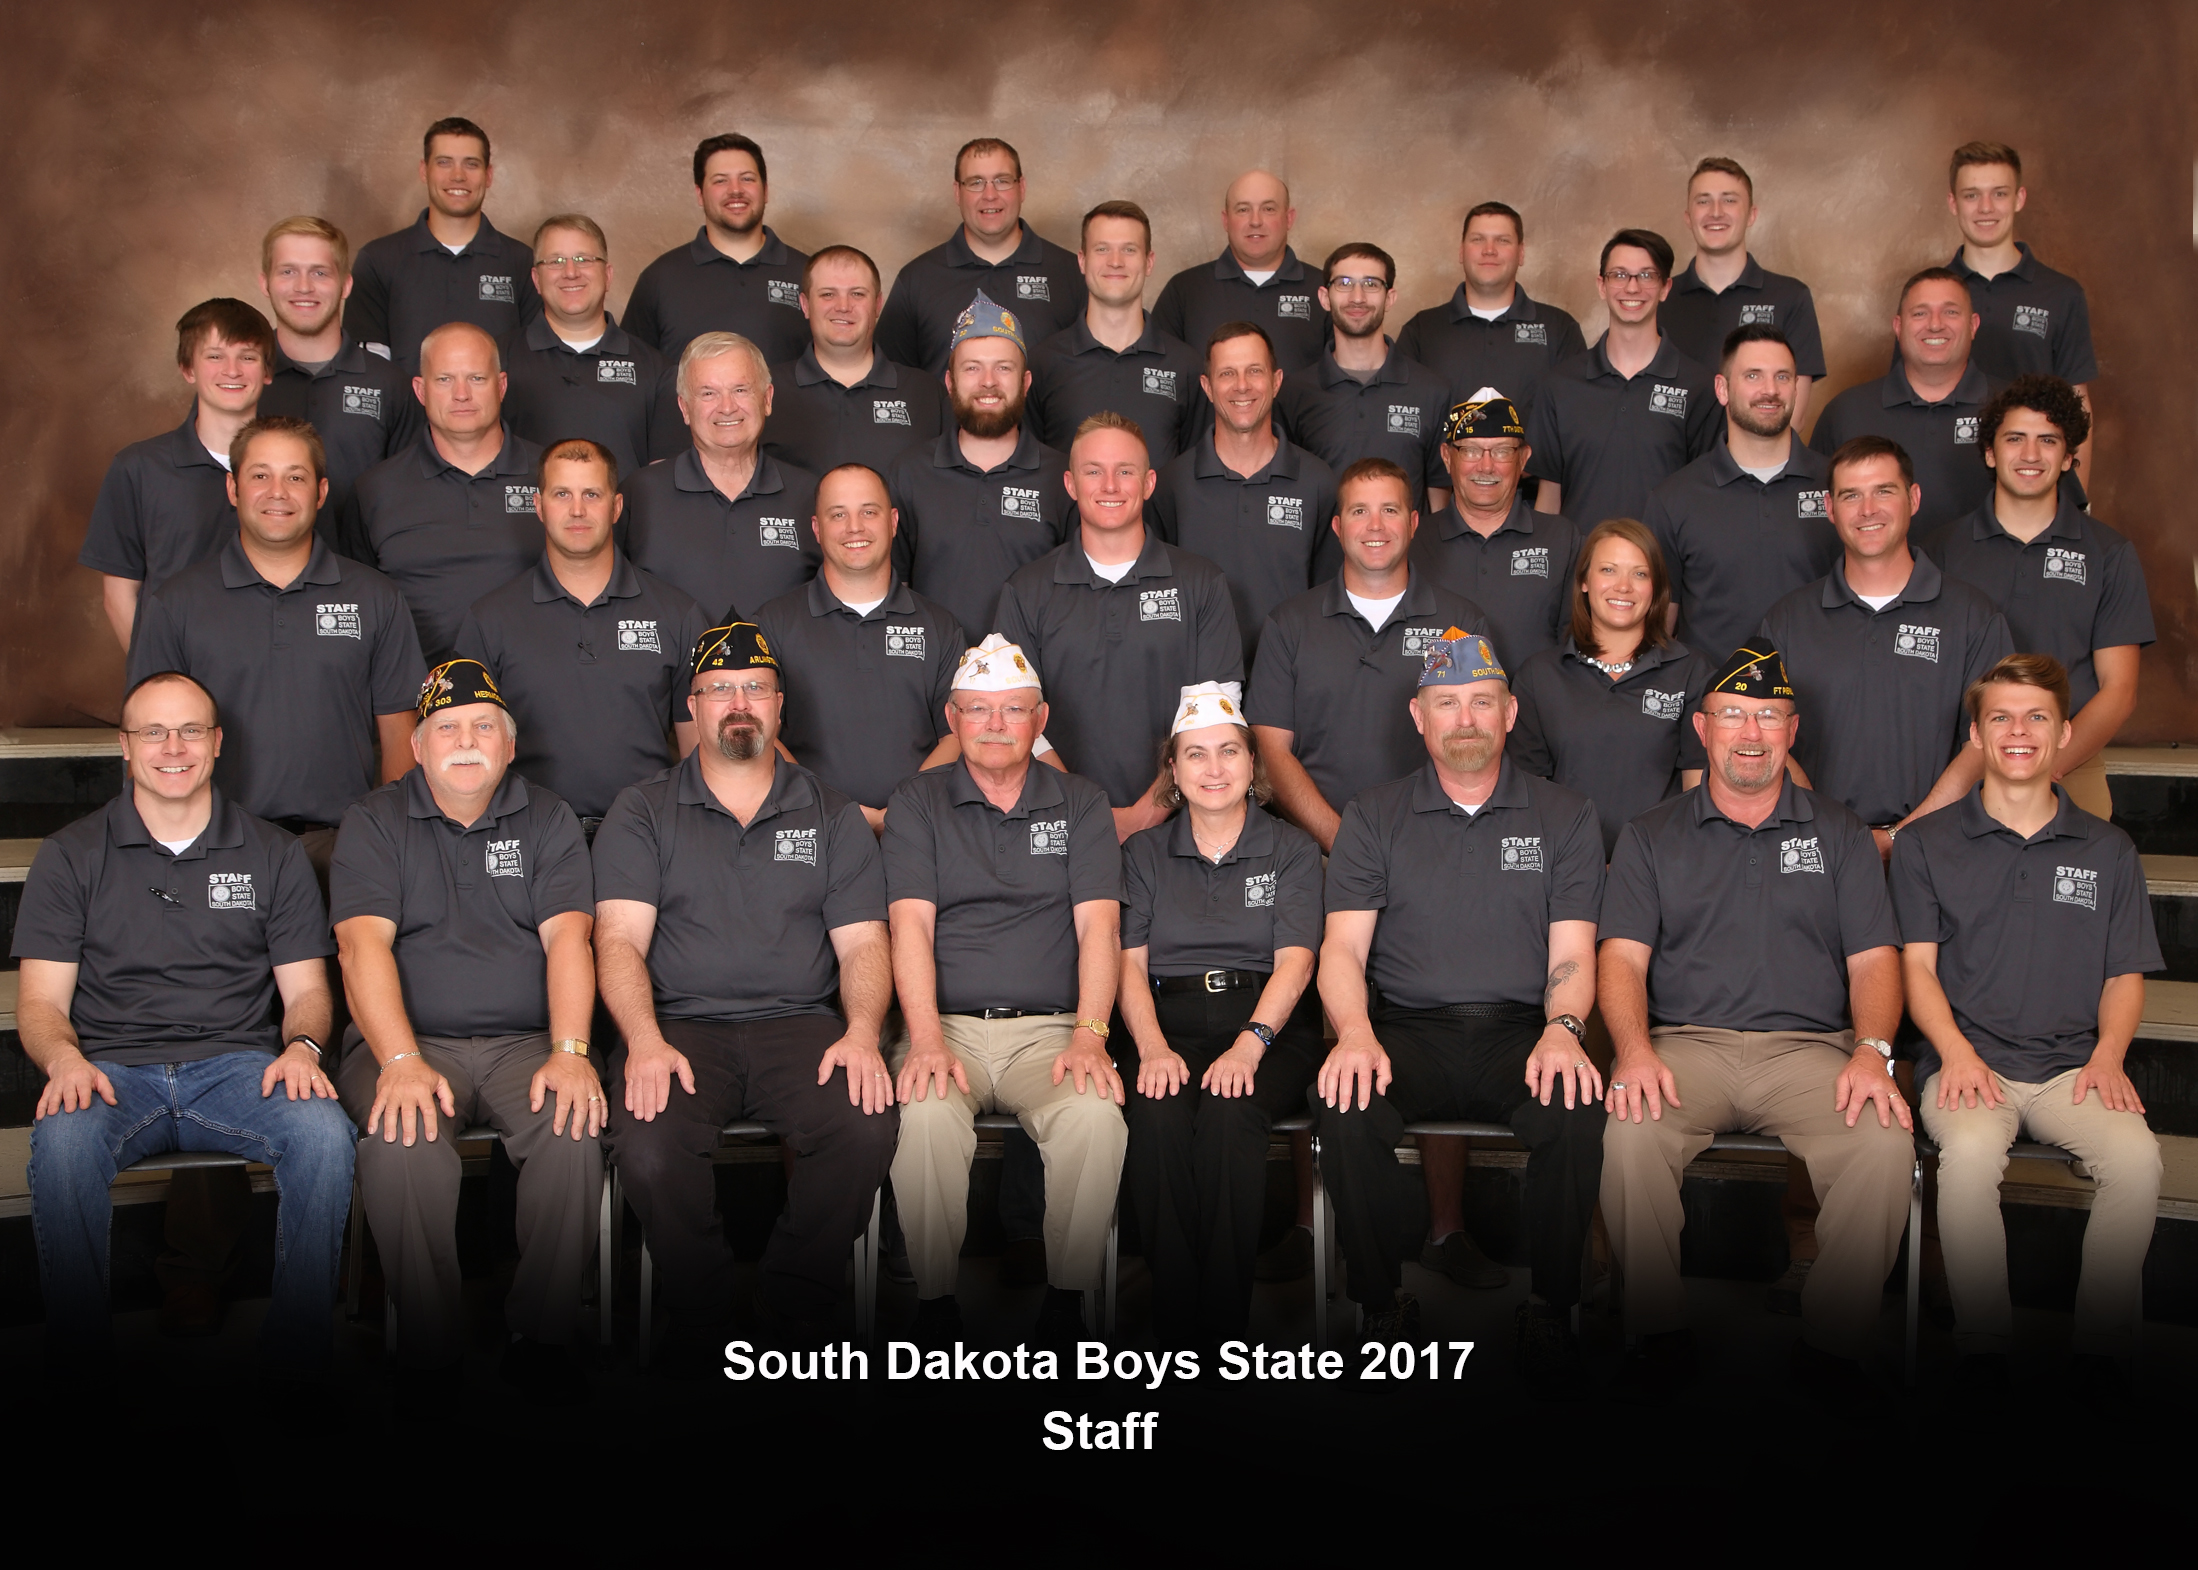 South Dakota Boys State Staff 2017